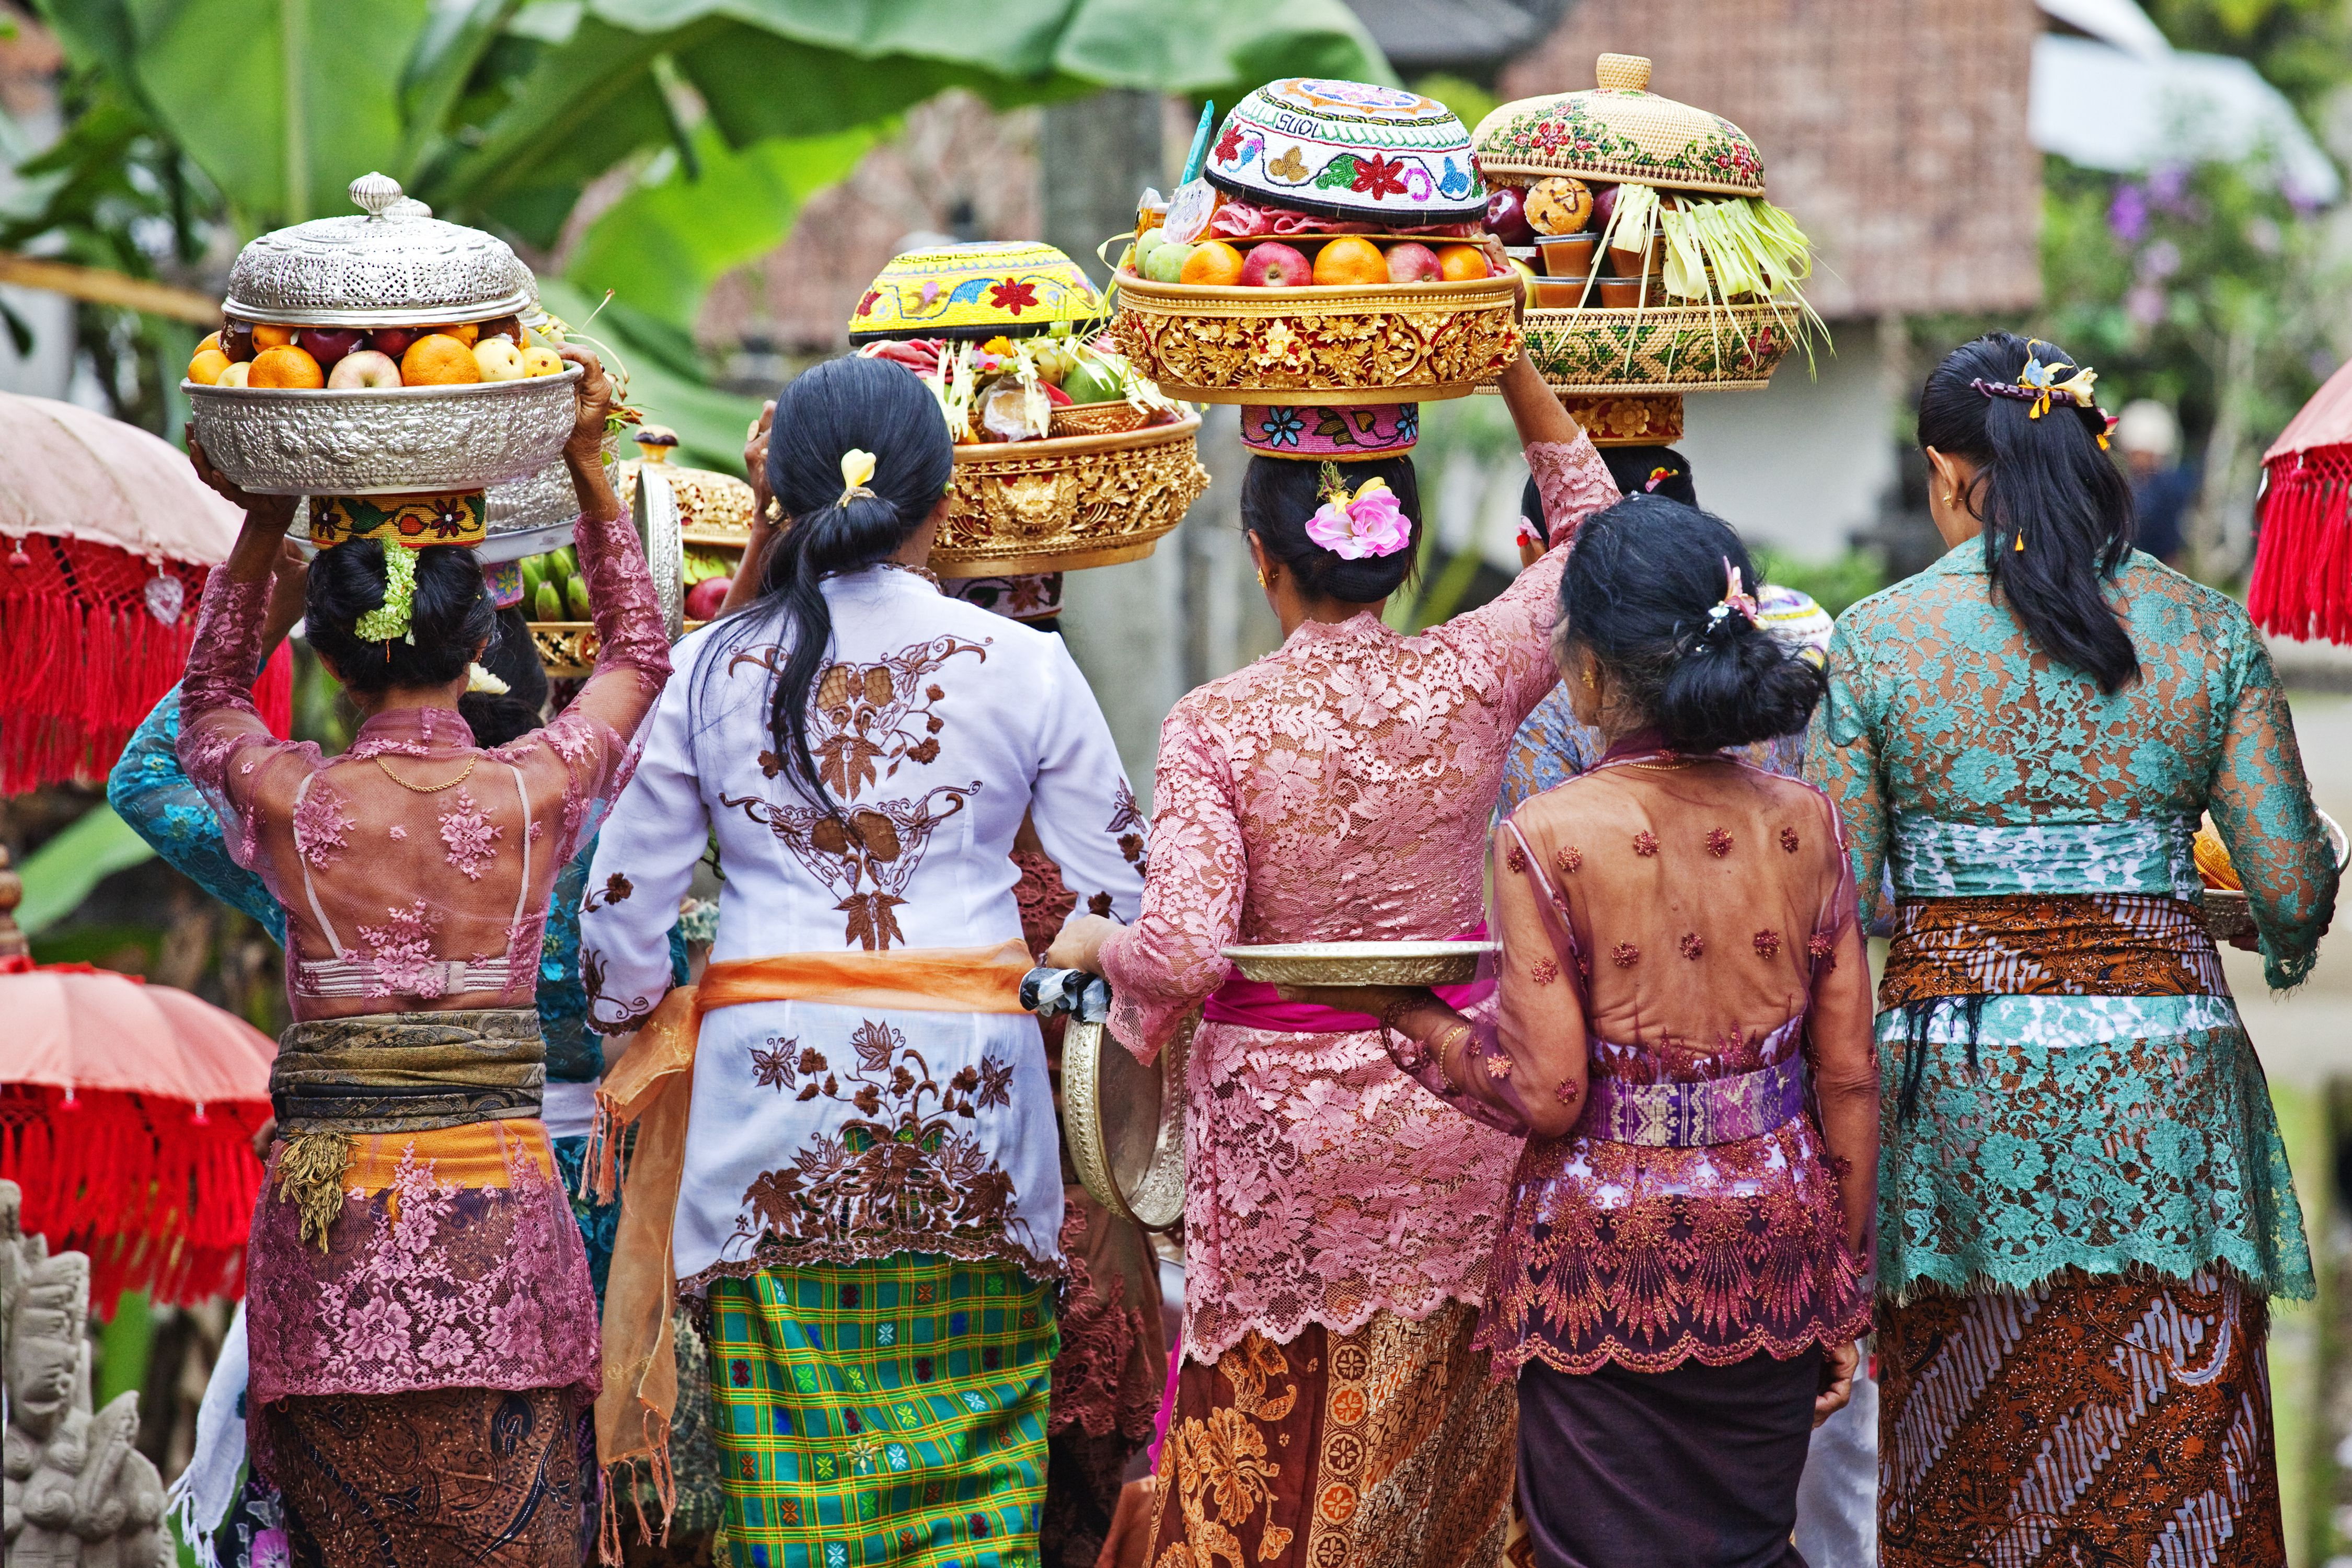 Indonesian Greetings: How to Say Hello in Indonesia